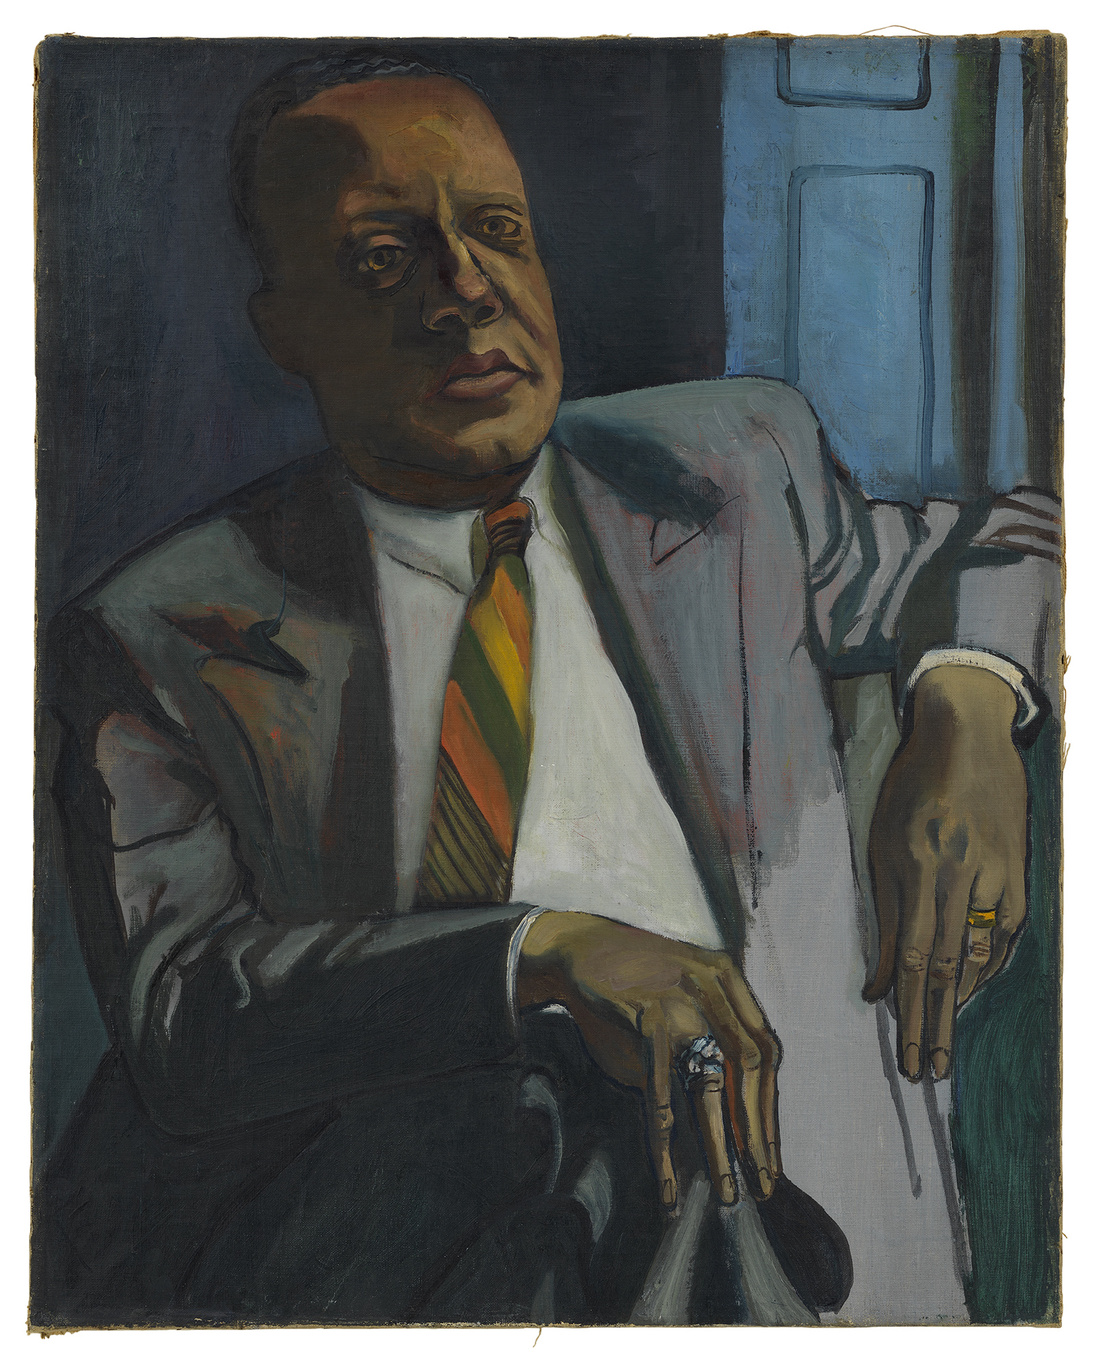 Alice Neel, Horace Cayton, 1949. © The Estate of Alice Neel. Courtesy David Zwirner, New York/London and Victoria Miro, London.